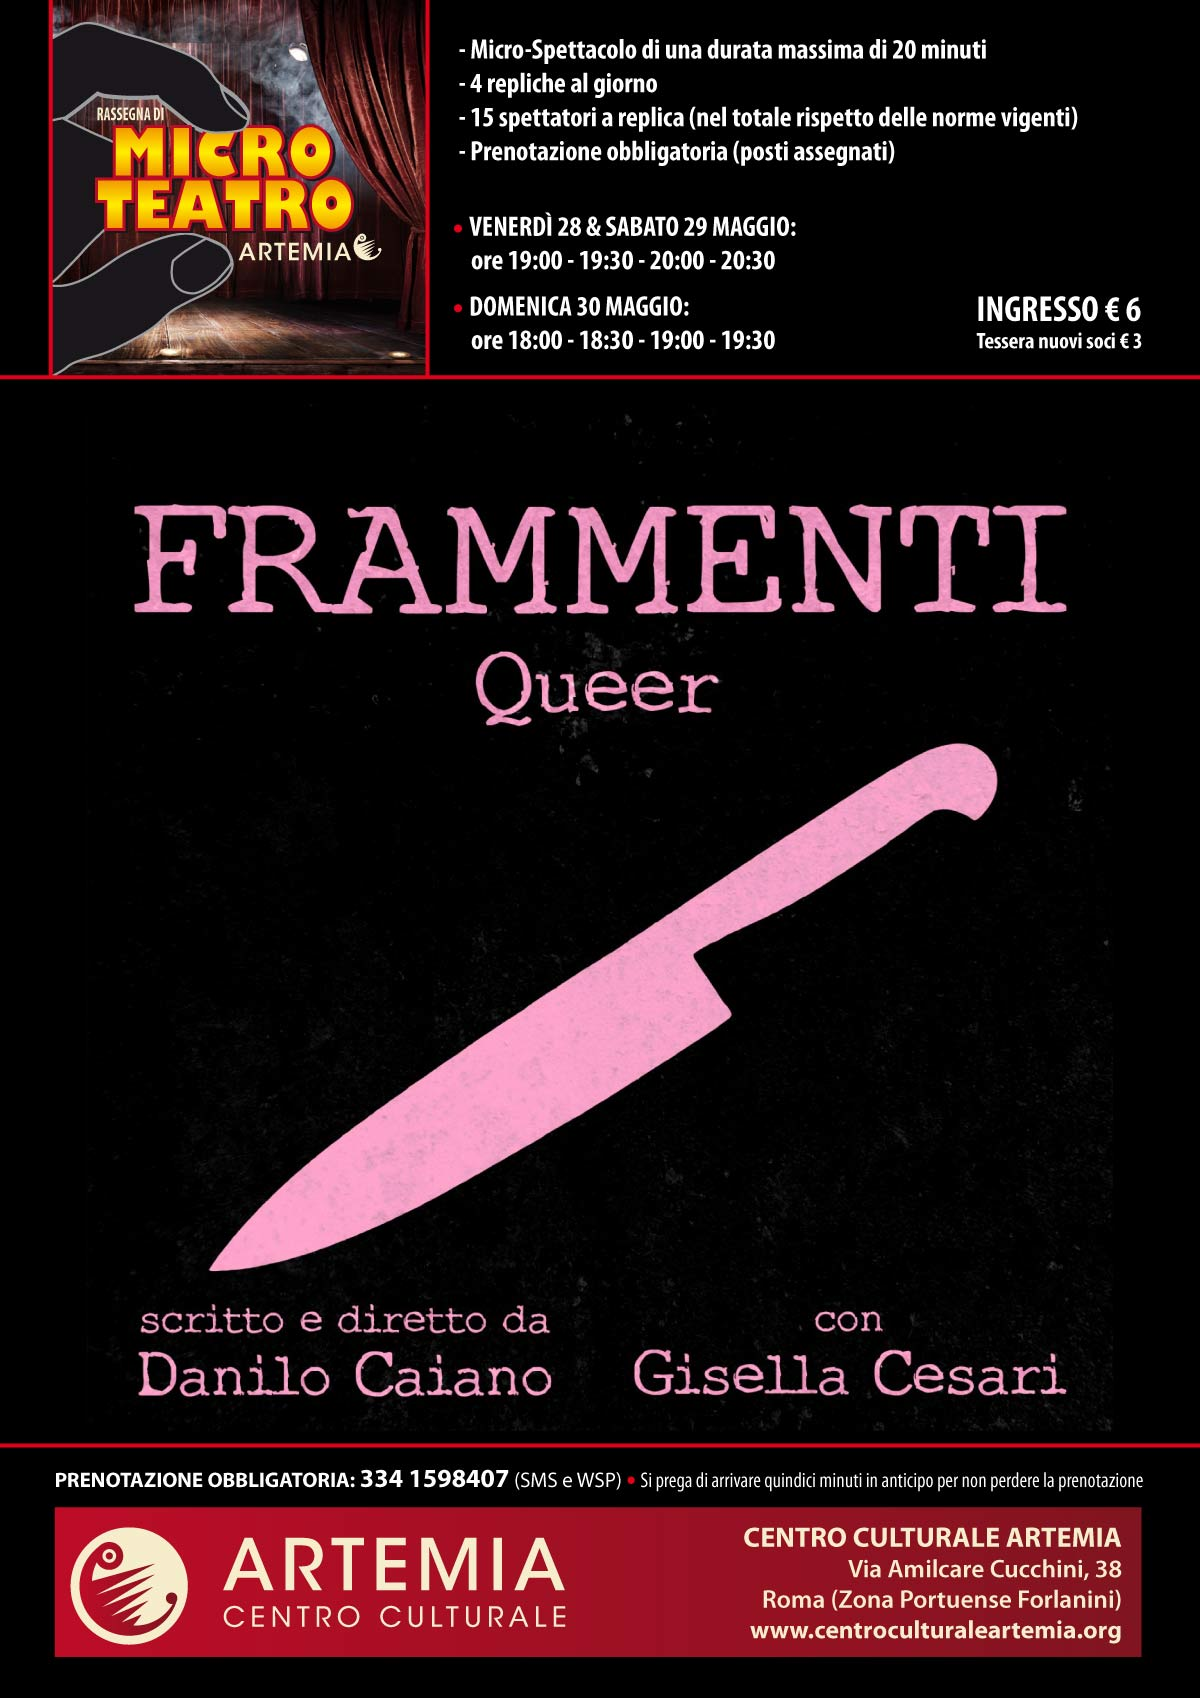 Frammenti Queer